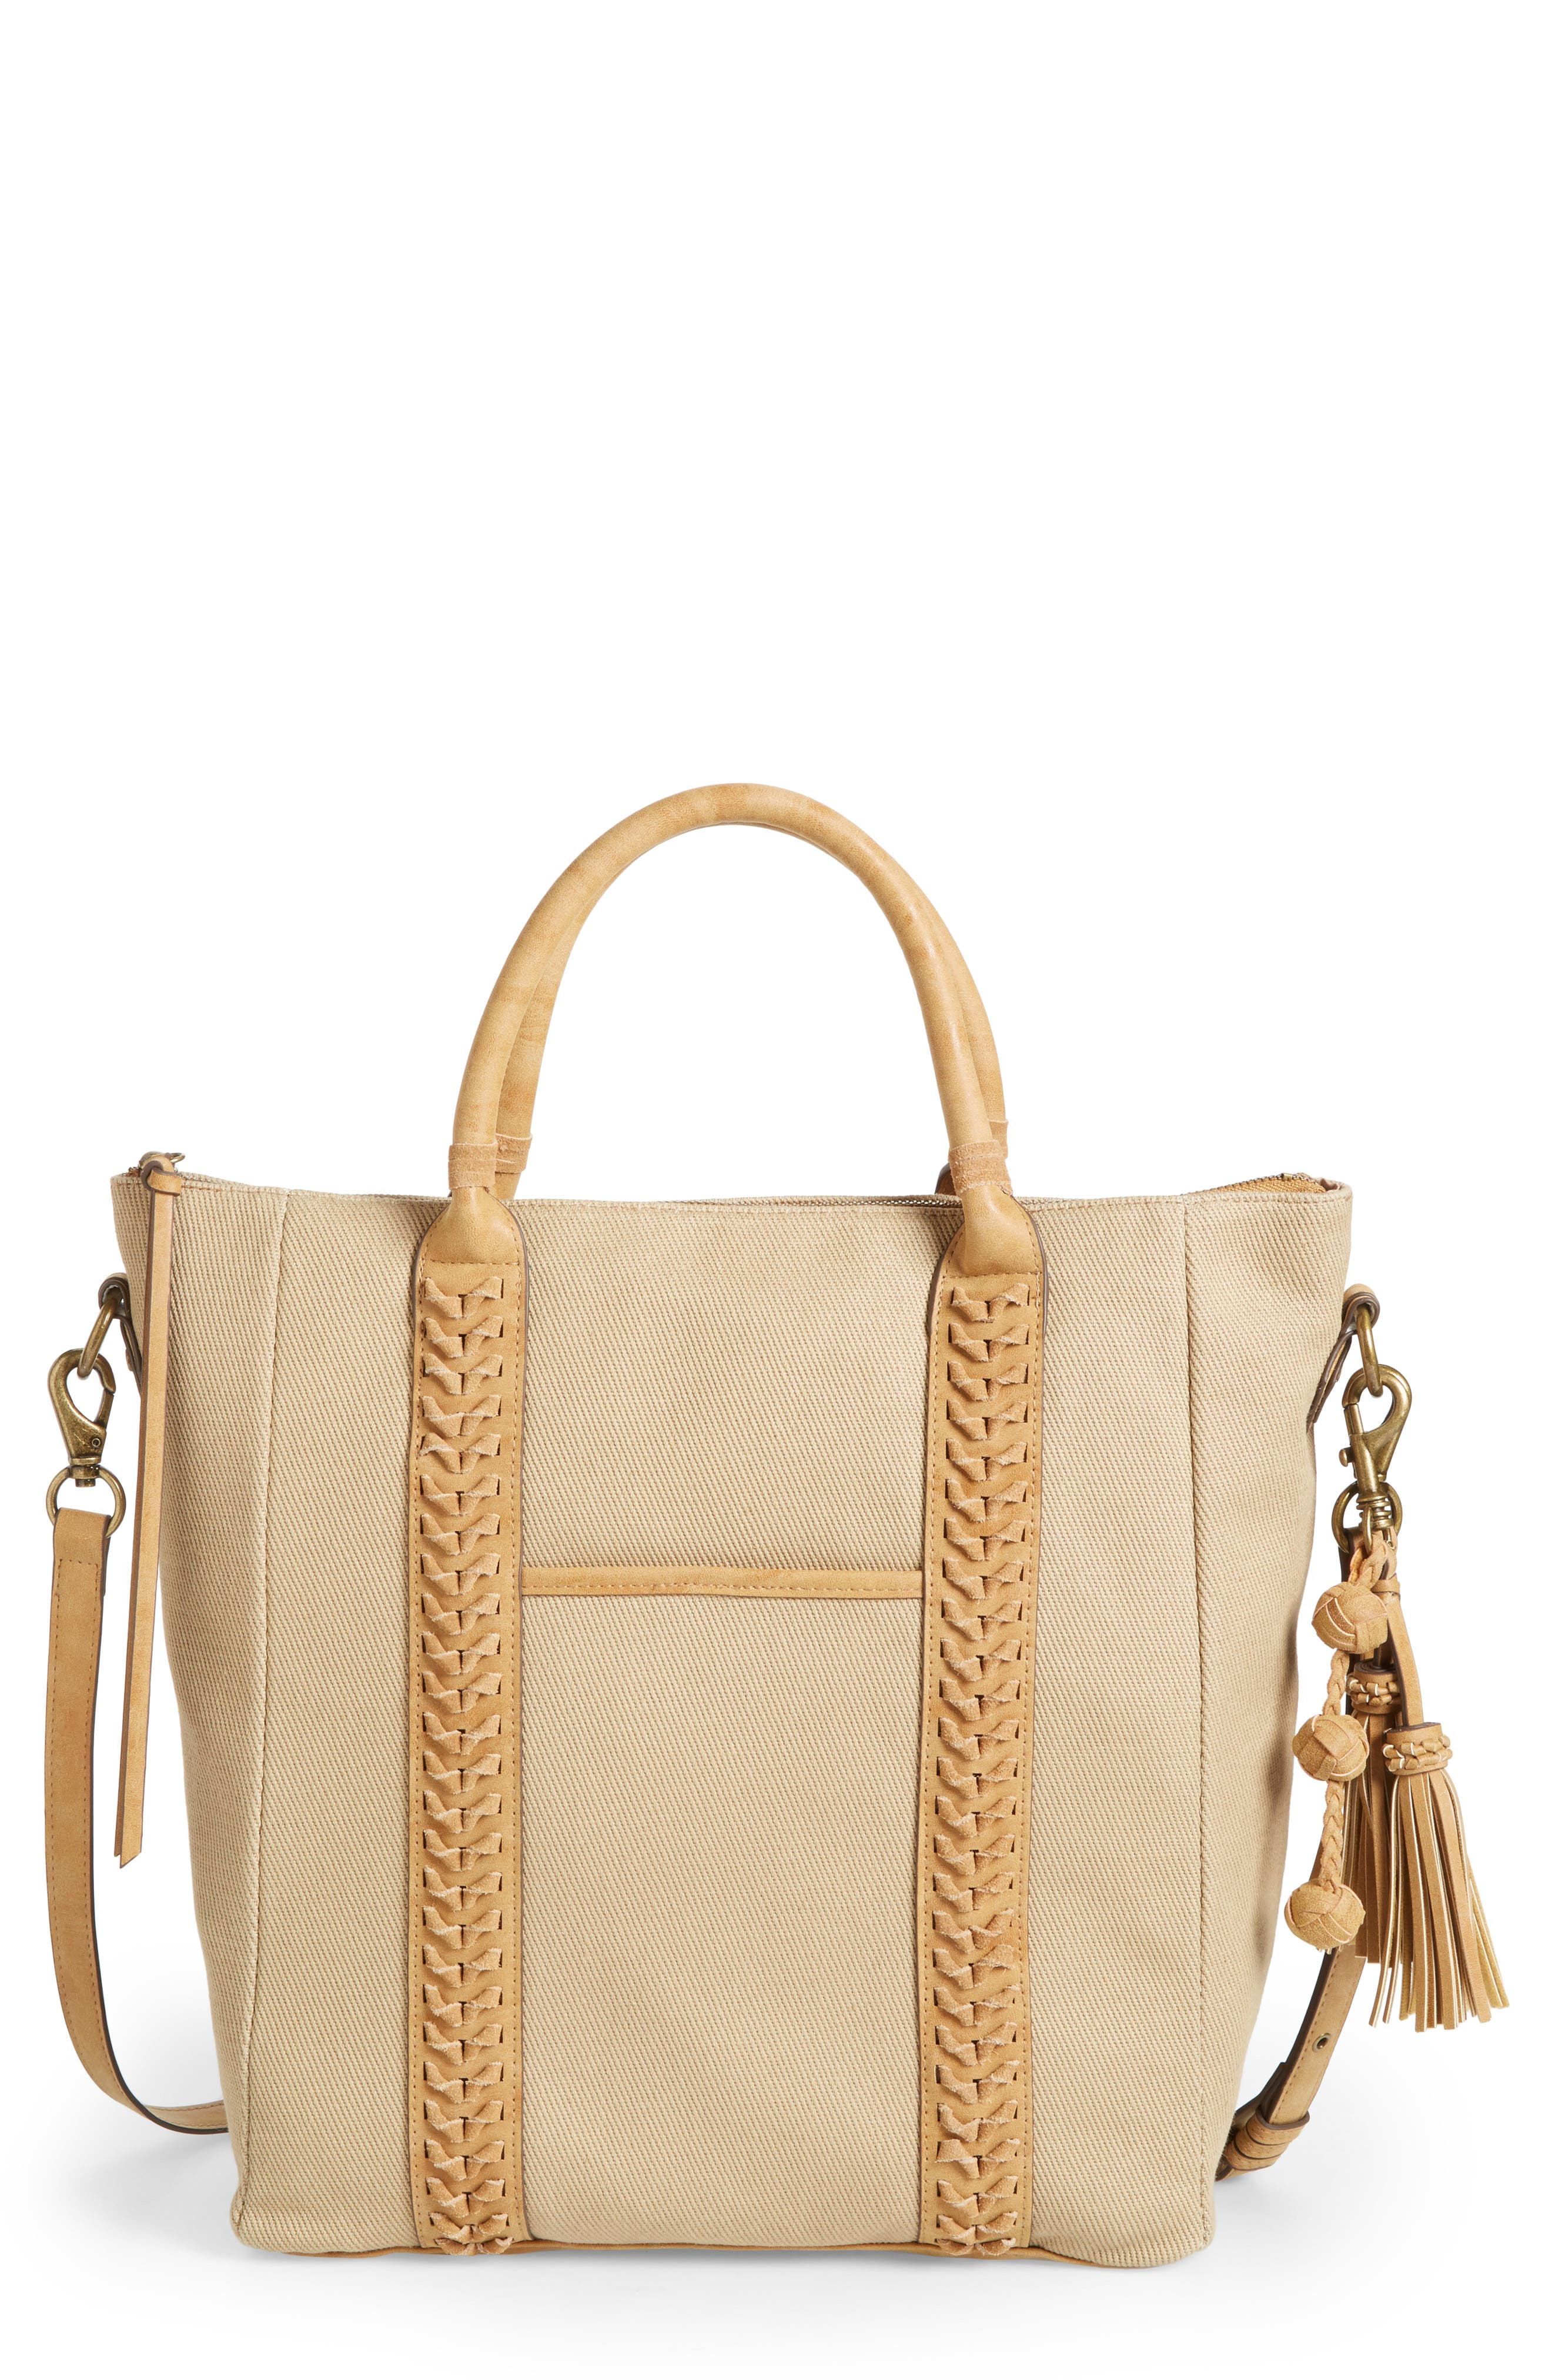 Elle & Jae Gypset Zaragoza Canvas & Faux Leather Tote